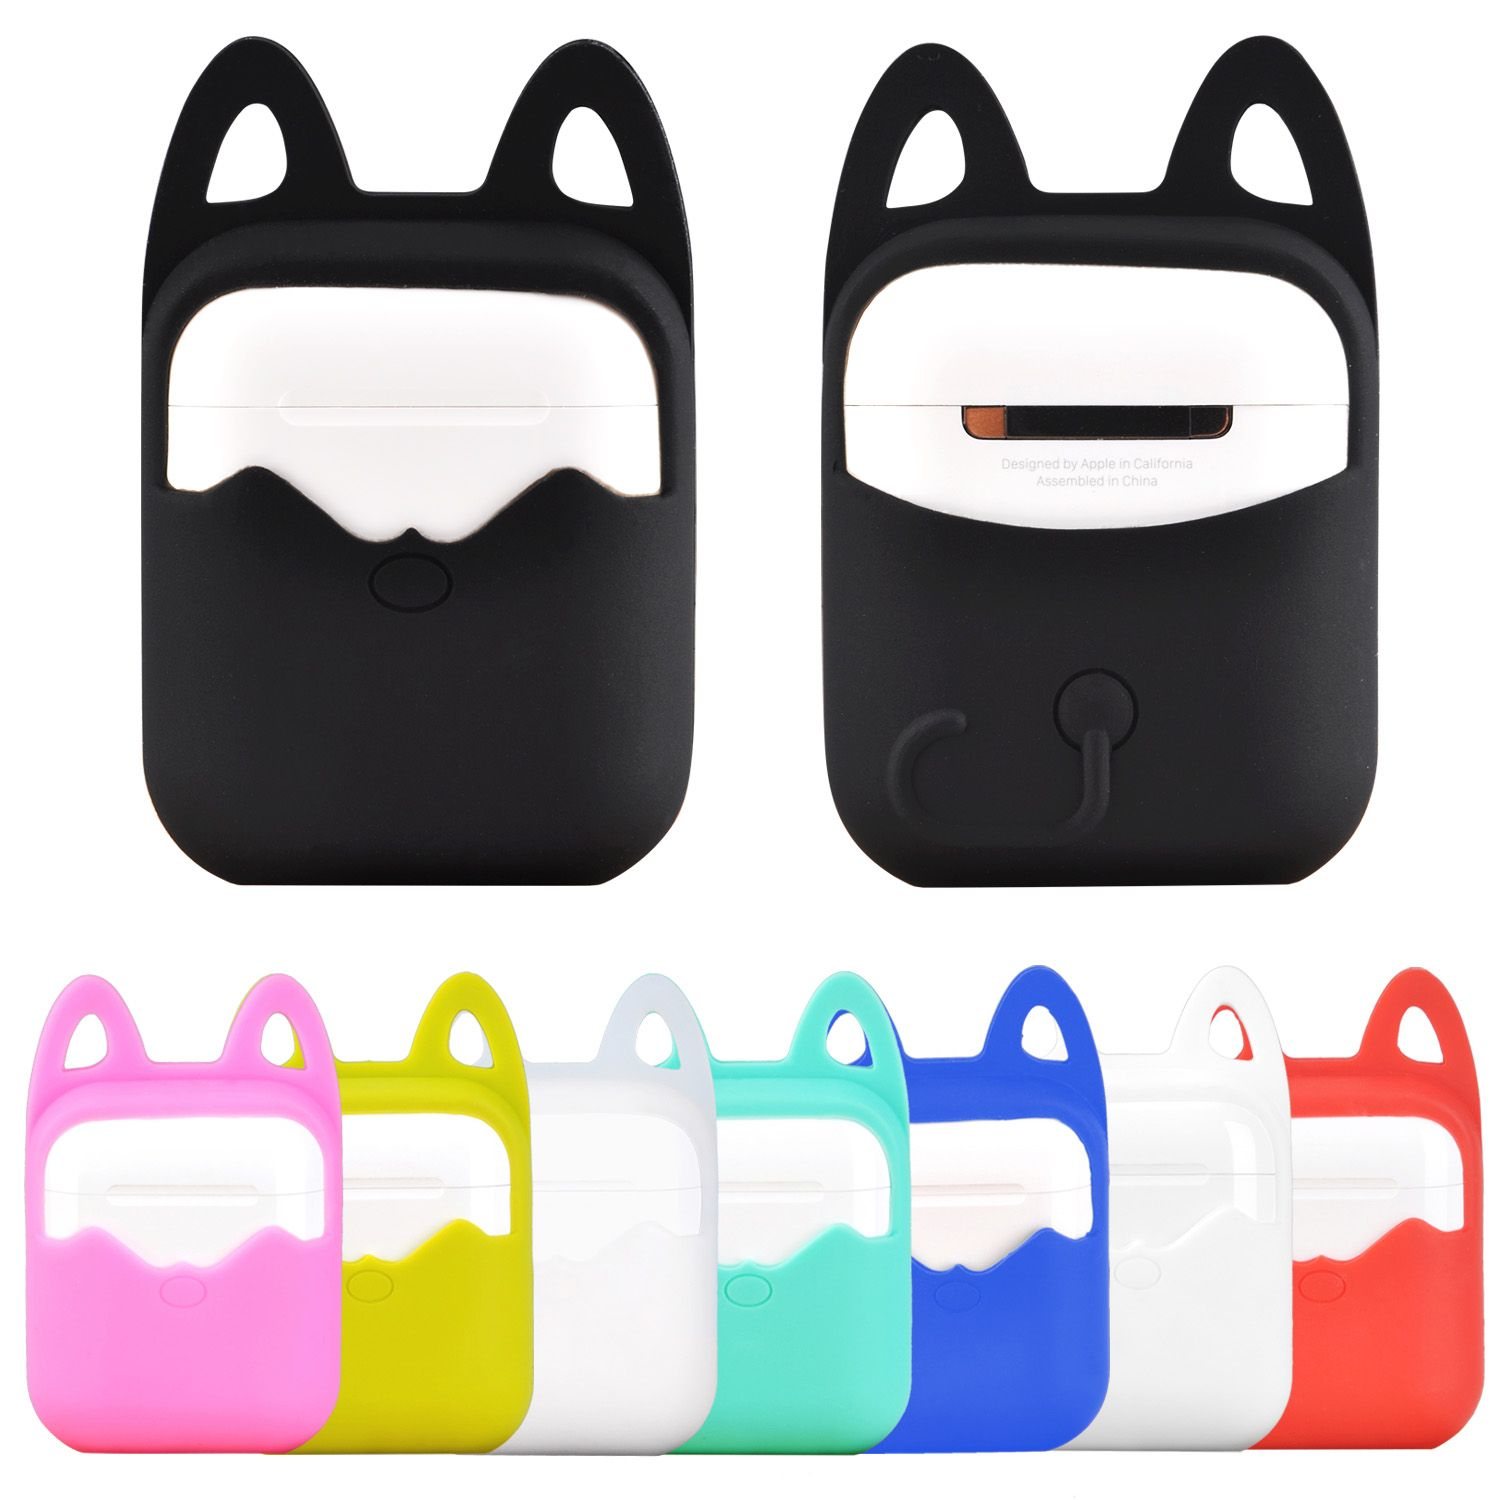 0f9f814f89c Hanging Cat Ears Silicone Rubber Bag Protective Cover Sleeve Case for Apple  Airpods Charging Case